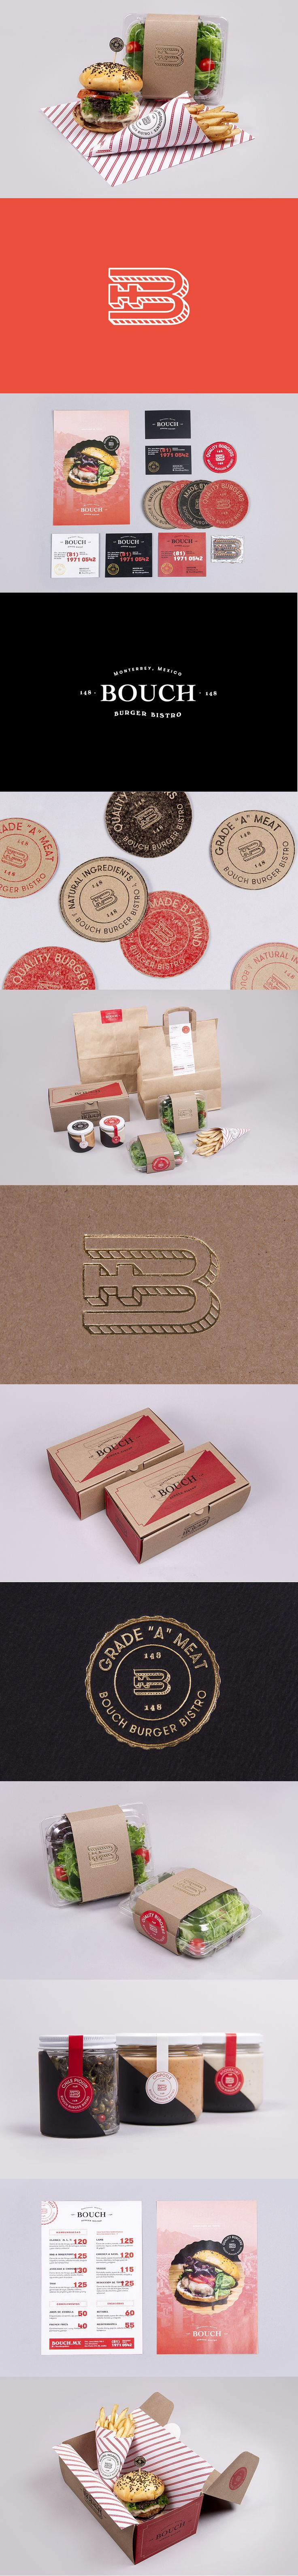 Bouch Burger Bistro. Who want's a burger #identity #packaging #branding PD...muy parecido a algo que conozco.....